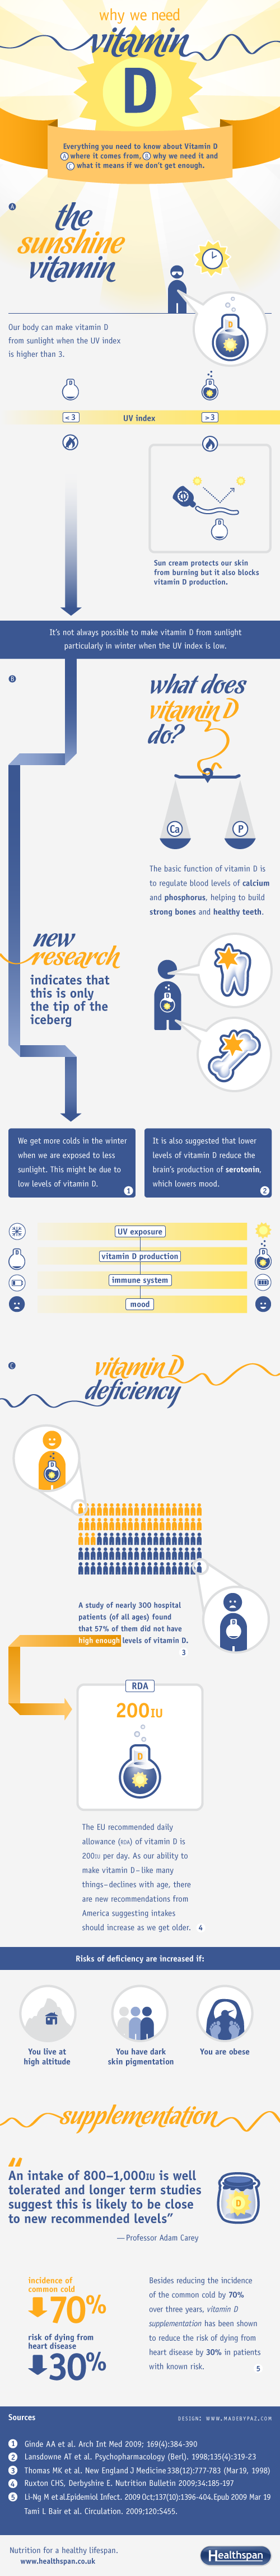 How to get enough Vitamin D Infographic by Healthspan